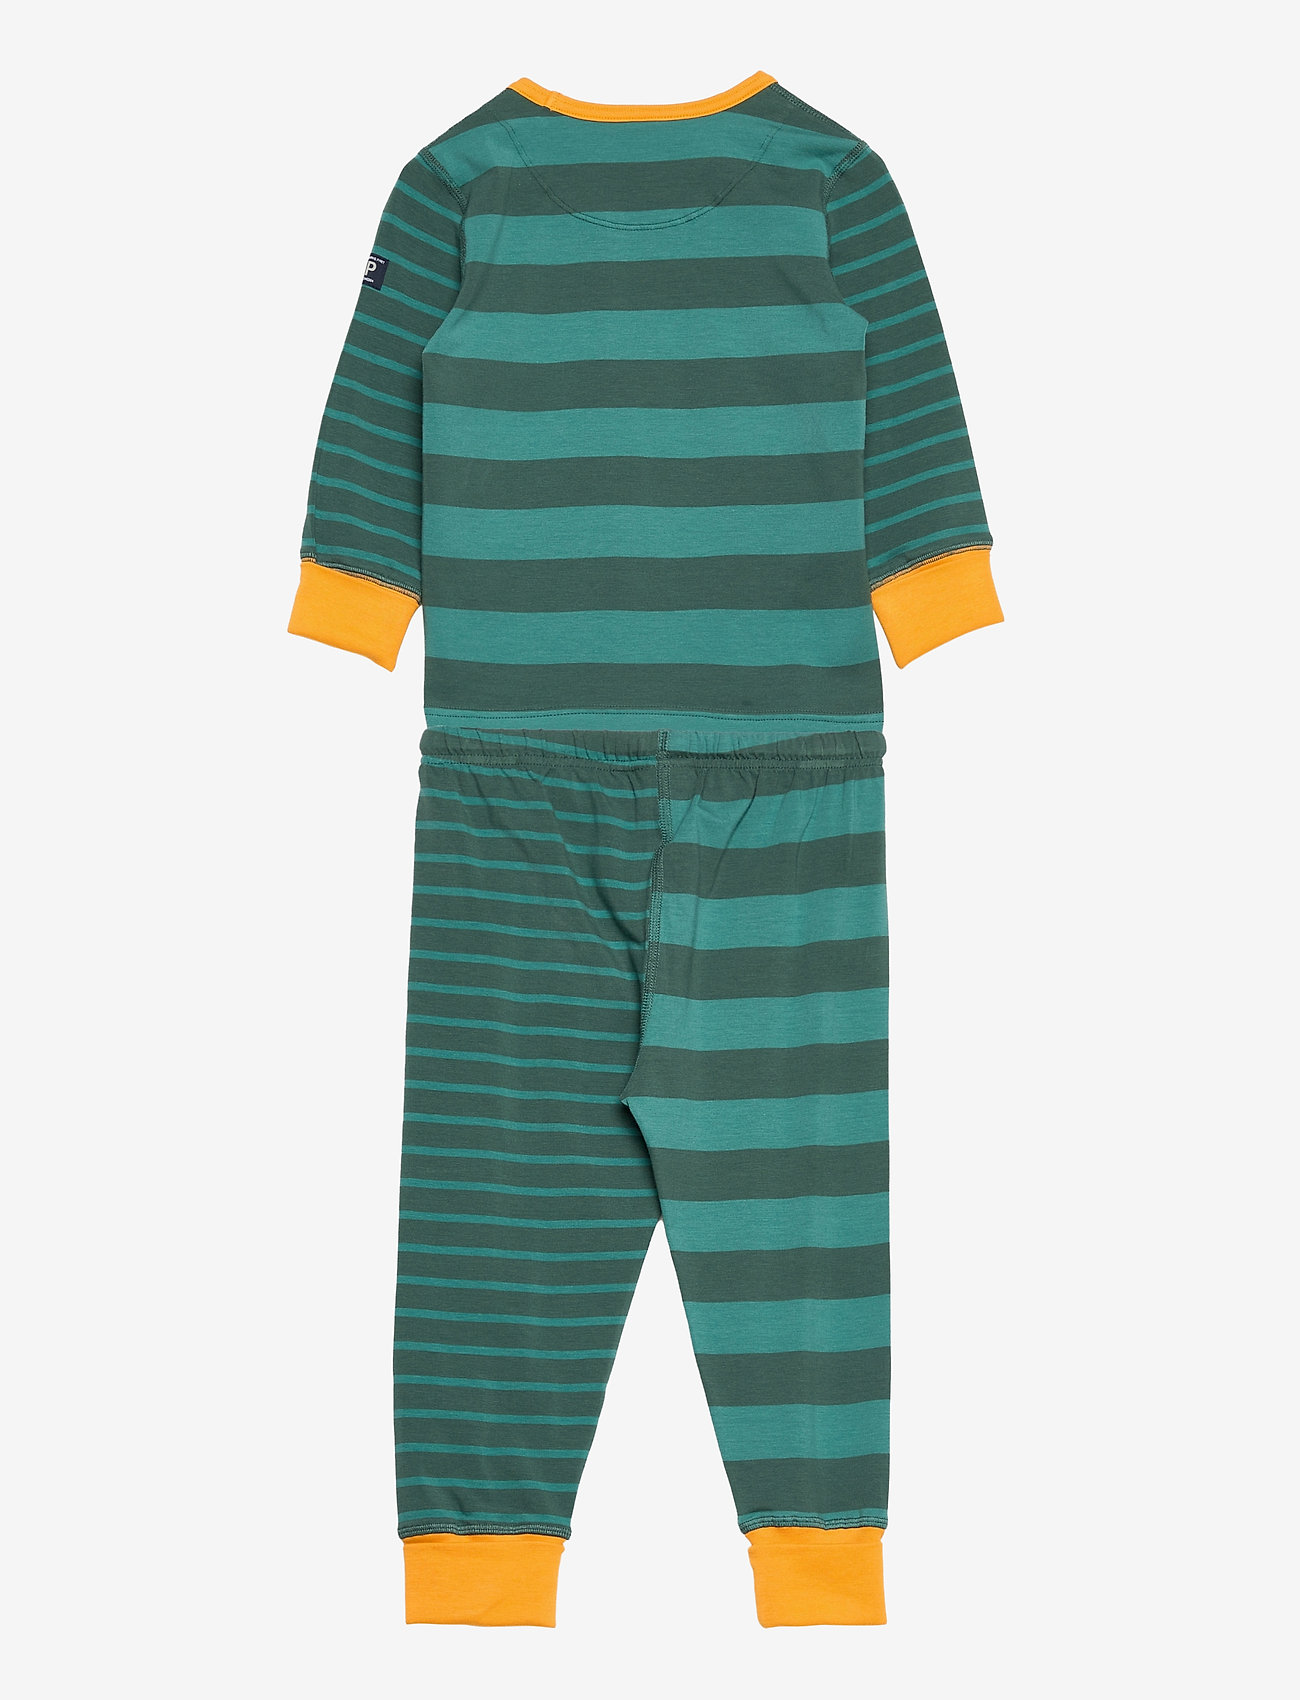 Pyjamas Striped Preschool (Fern) (37.90 €) - Polarn O. Pyret 6rPTw